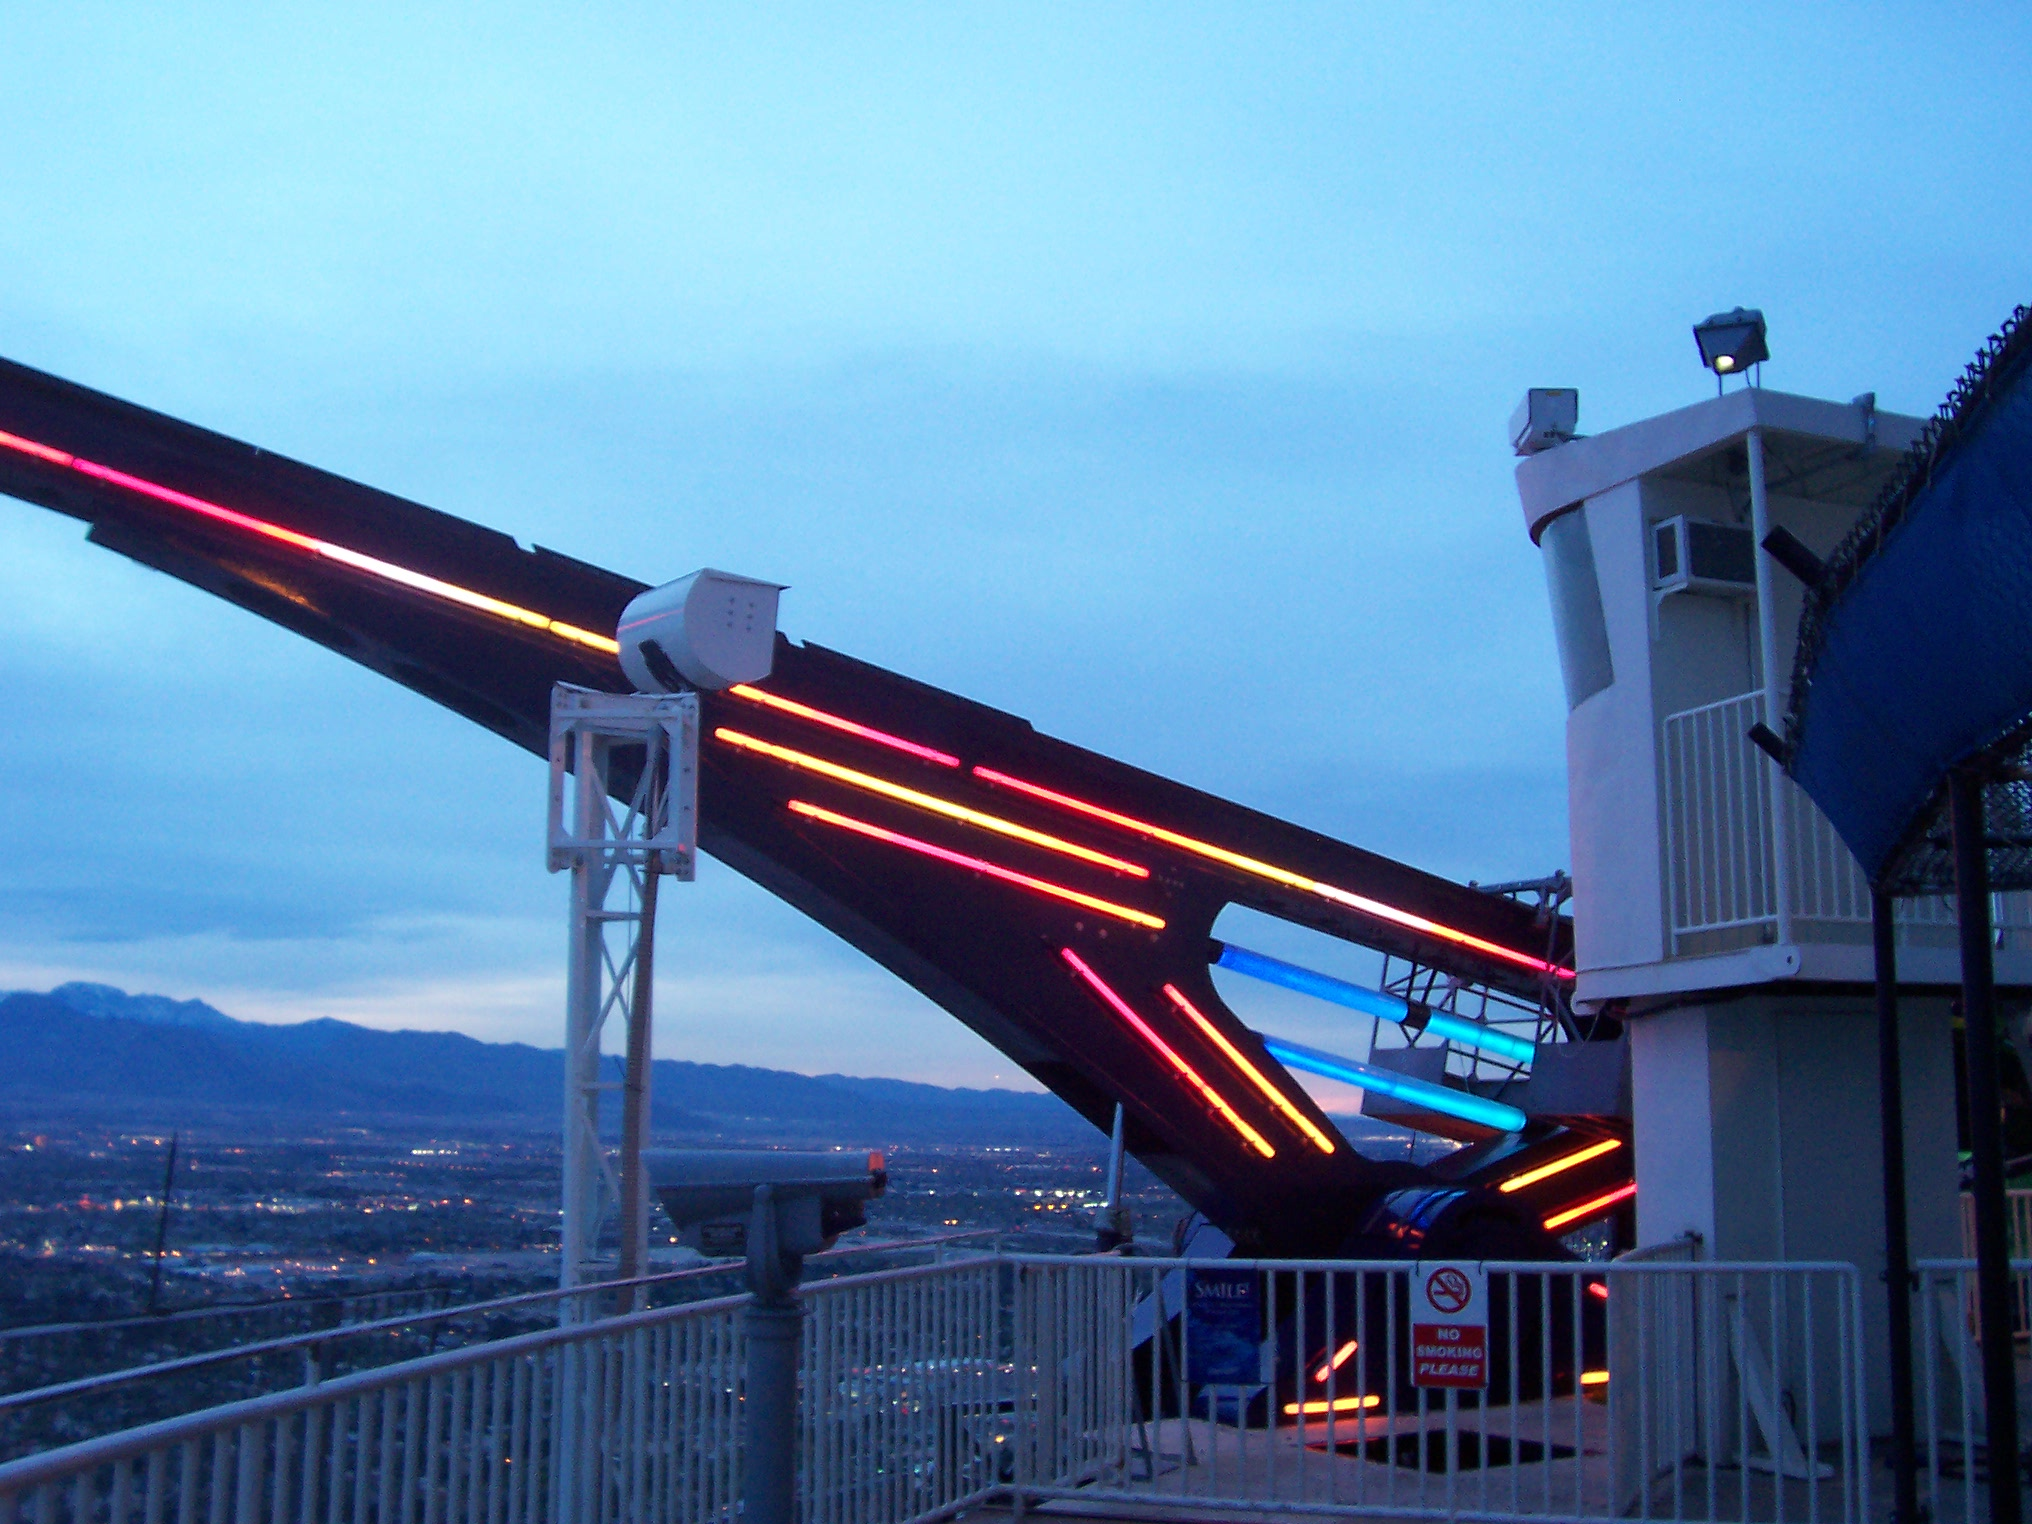 File:X-Scream ride at Stratosphere.jpg - Wikimedia Commons